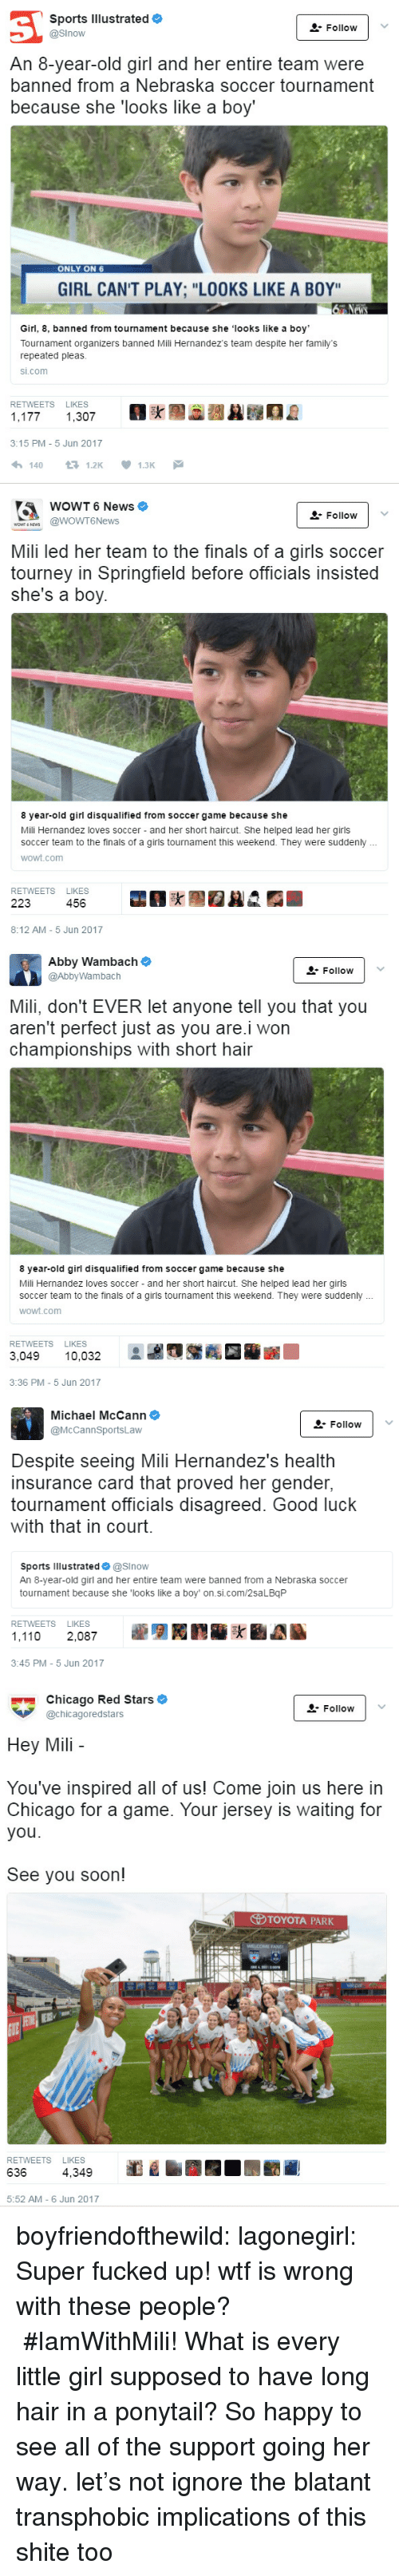 """Good Luck With That: Sports Illustrated  @Sinow  & Follow  An 8-year-old girl and her entire team were  banned from a Nebraska soccer tournament  because she 'looks like a boy'  ONLY ON 6  GIRL CAN'T PLAY; """"LOOKS LIKE A BOY  Girl, 8, banned from tournament because she looks like a boy  Tournament organizers banned Mili Hernandez's team despite her family's  repeated pleas.  si.com  RETWEETS LIKES  ,177 1,307  3:15 PM- 5 Jun 2017   WOWT News  oWT6News  Follow v  รู้เ  Mili led her team to the finals of a girls soccer  tourney in Springfield before officials insisted  she's a boy.  8 year-old girl disqualified from soccer game because she  Mili Hernandez loves soccer - and her short haircut. She helped lead her girls  soccer team to the finals of a girls tournament this weekend. They were suddenly  wowt.com  RETWEETS LIKES  223 456  8:12 AM -5 Jun 2017   Abby Wambach  @AbbyWambach  Follovw  Mili, don't EVER let anyone tell you that you  aren't perfect just as you are.i won  championships with short hair  8 year-old girl disqualified from soccer game because she  Mili Hernandez loves soccer and her short haircut. She helped lead her girls  soccer team to the finals of a girls tournament this weekend. They were suddenly  wowt.com  RETWEETS LIKES  3,049 10,032  3:36 PM -5 Jun 2017   Michael McCann  @McCannSportsLaw  Follow  Despite seeing Mili Hernandez's health  insurance card that proved her gender,  tournament officials disagreed. Good luck  with that in court.  Sports Illustrated @Slnow  An 8-year-old girl and her entire team were banned from a Nebraska soccer  tournament because she 'looks like a boy' on.si.com/2saLBqP  RETWEETS LIKES  1,110 2,087  3:45 PM-5 Jun 2017   Chicago Red Stars  @chicagoredstars  Follow  Hey Mili  You've inspired all of us! Come join us here in  Chicago for a game. Your jersey is waiting for  you  See you soon!  TOYOTA PARK  RETWEETS LIKES  636  4,349  5:52 AM - 6 Jun 2017 boyfriendofthewild: lagonegirl:      Super fucked up! wtf is wrong w"""